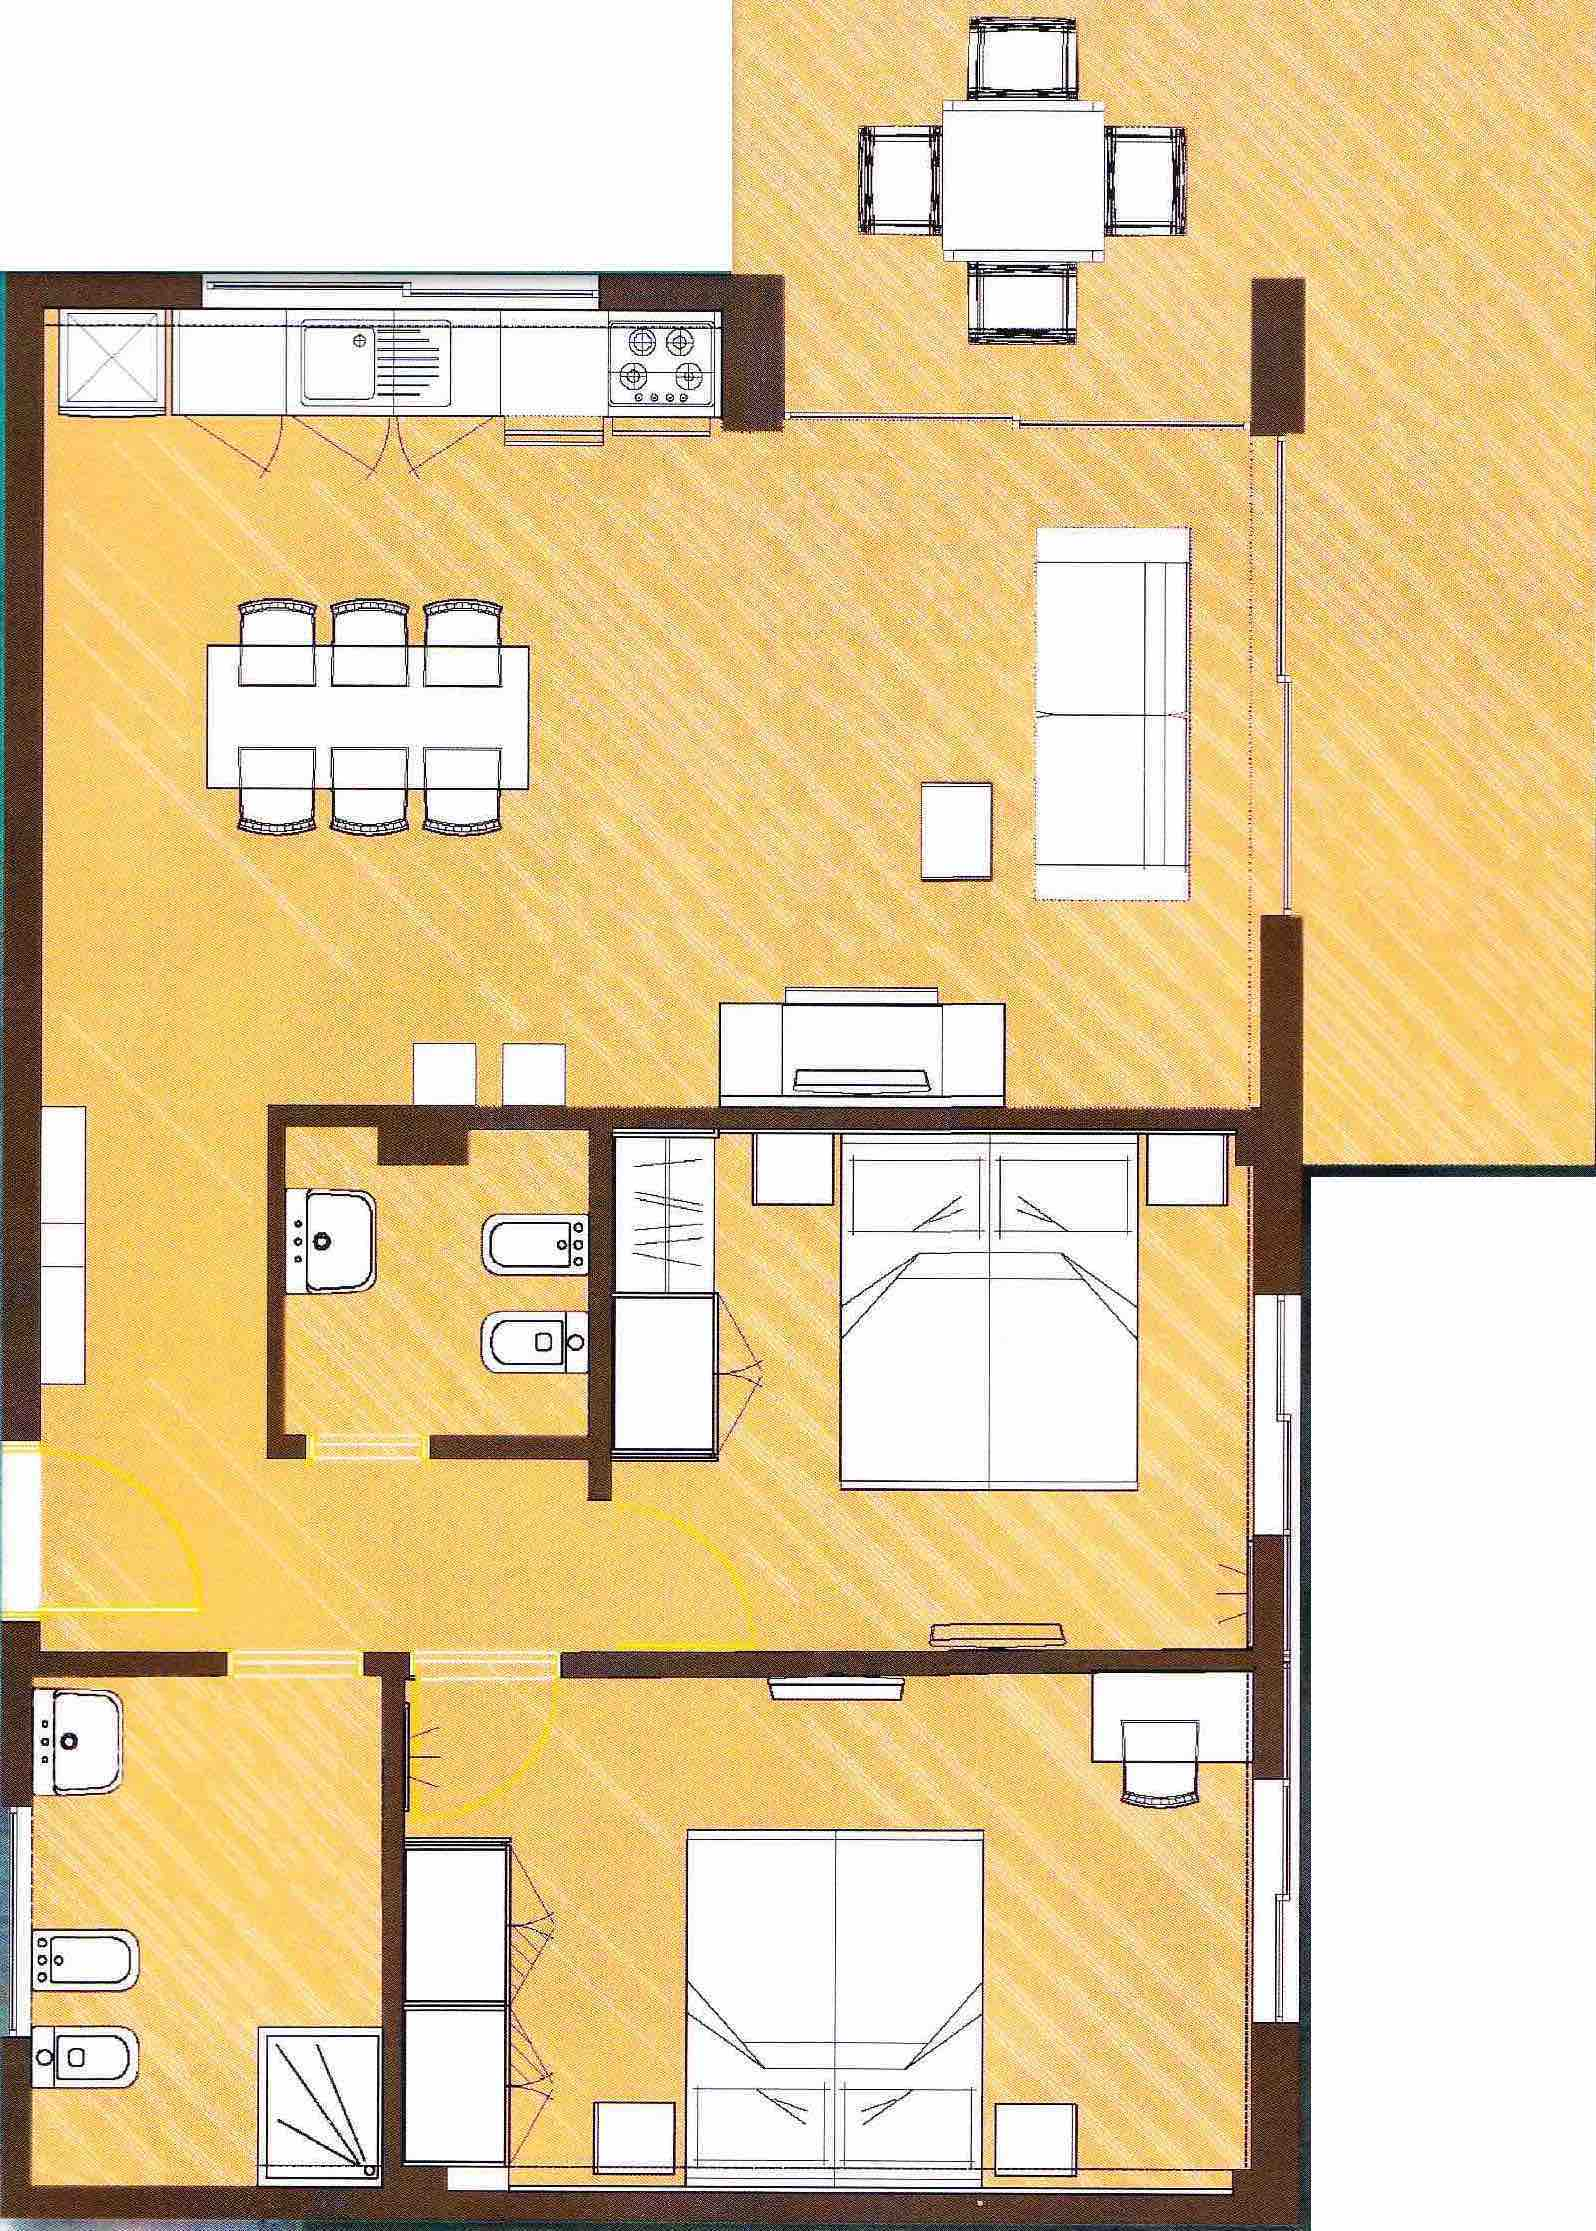 Apartment - D floor plan